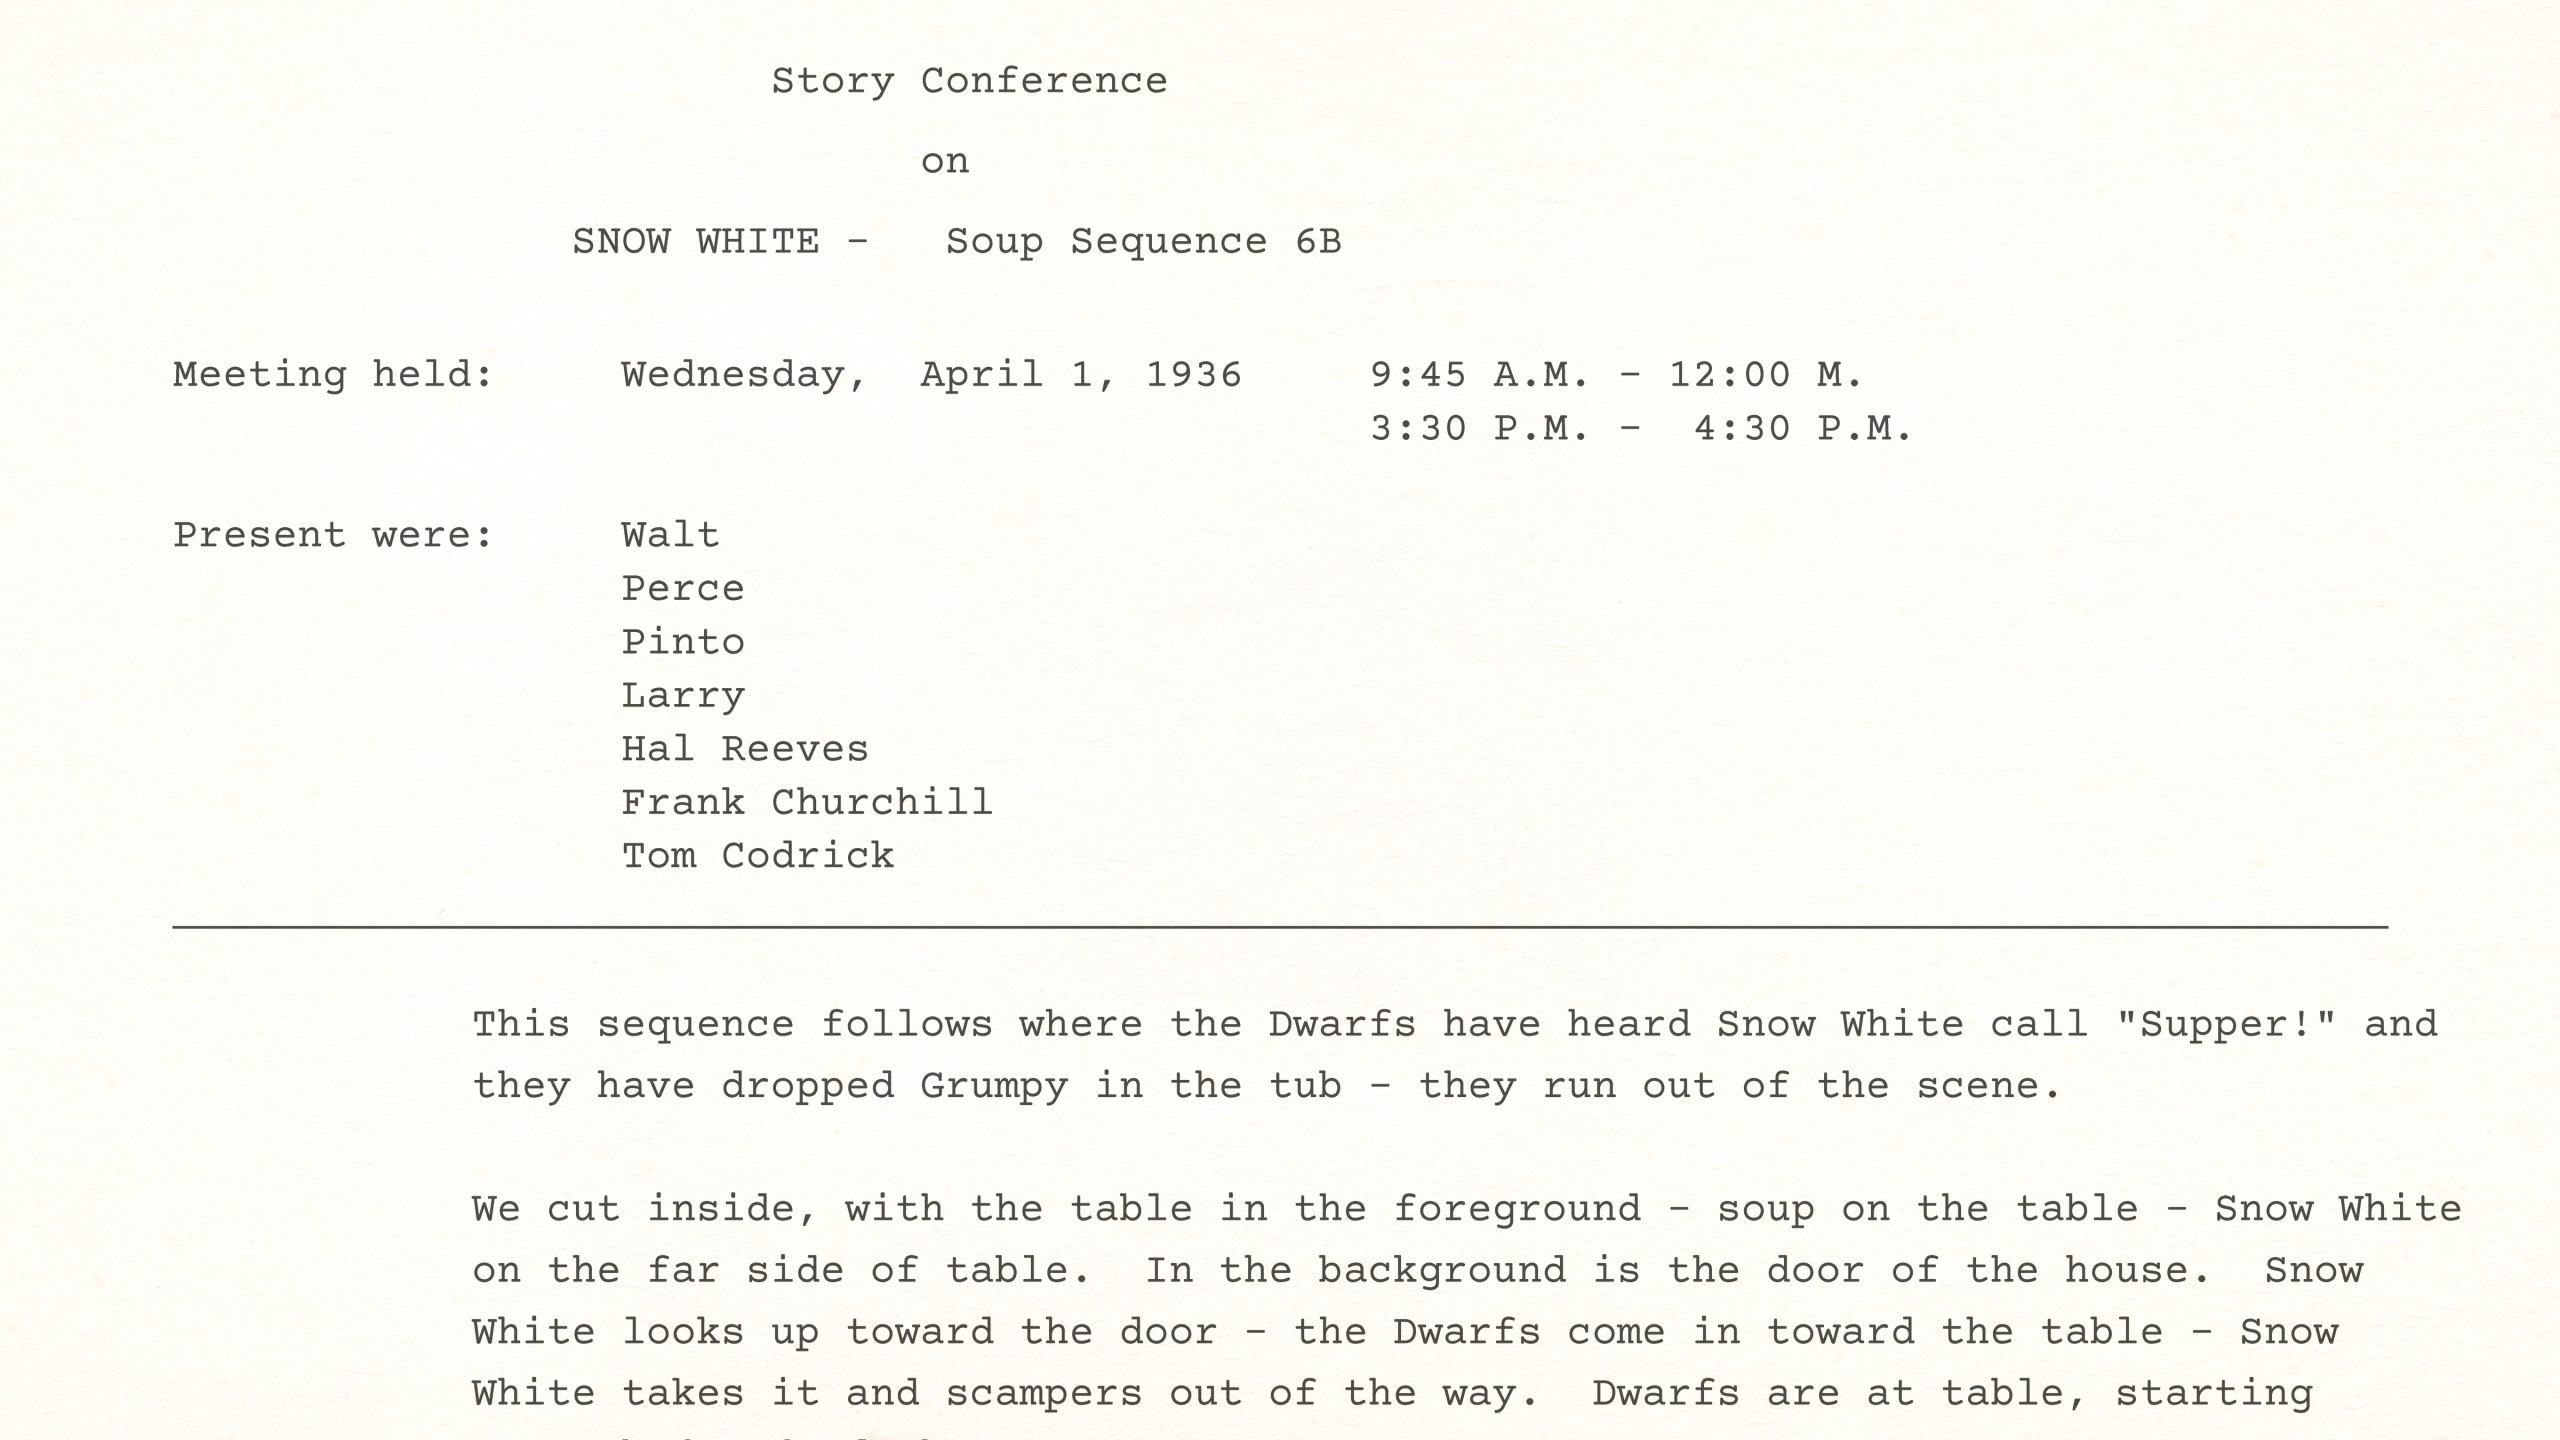 Story Conference on Snow White's SOUP SEQUENCE, April 1st, 1936